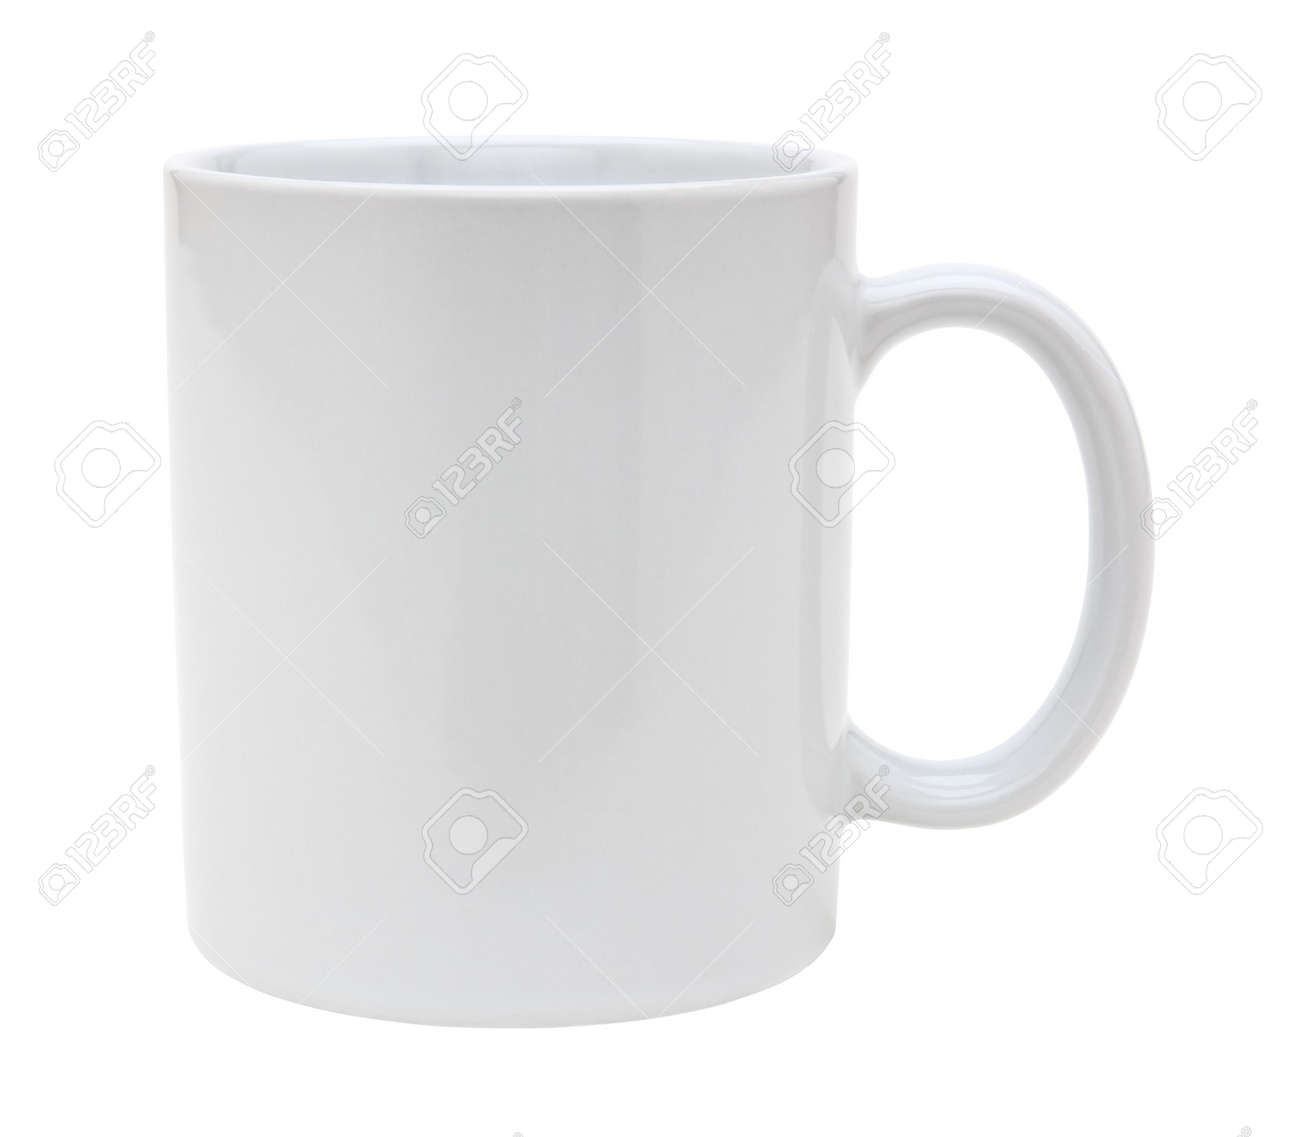 White mug empty blank for coffeó or tea isolated on white background with clipping path Stock Photo - 3572300